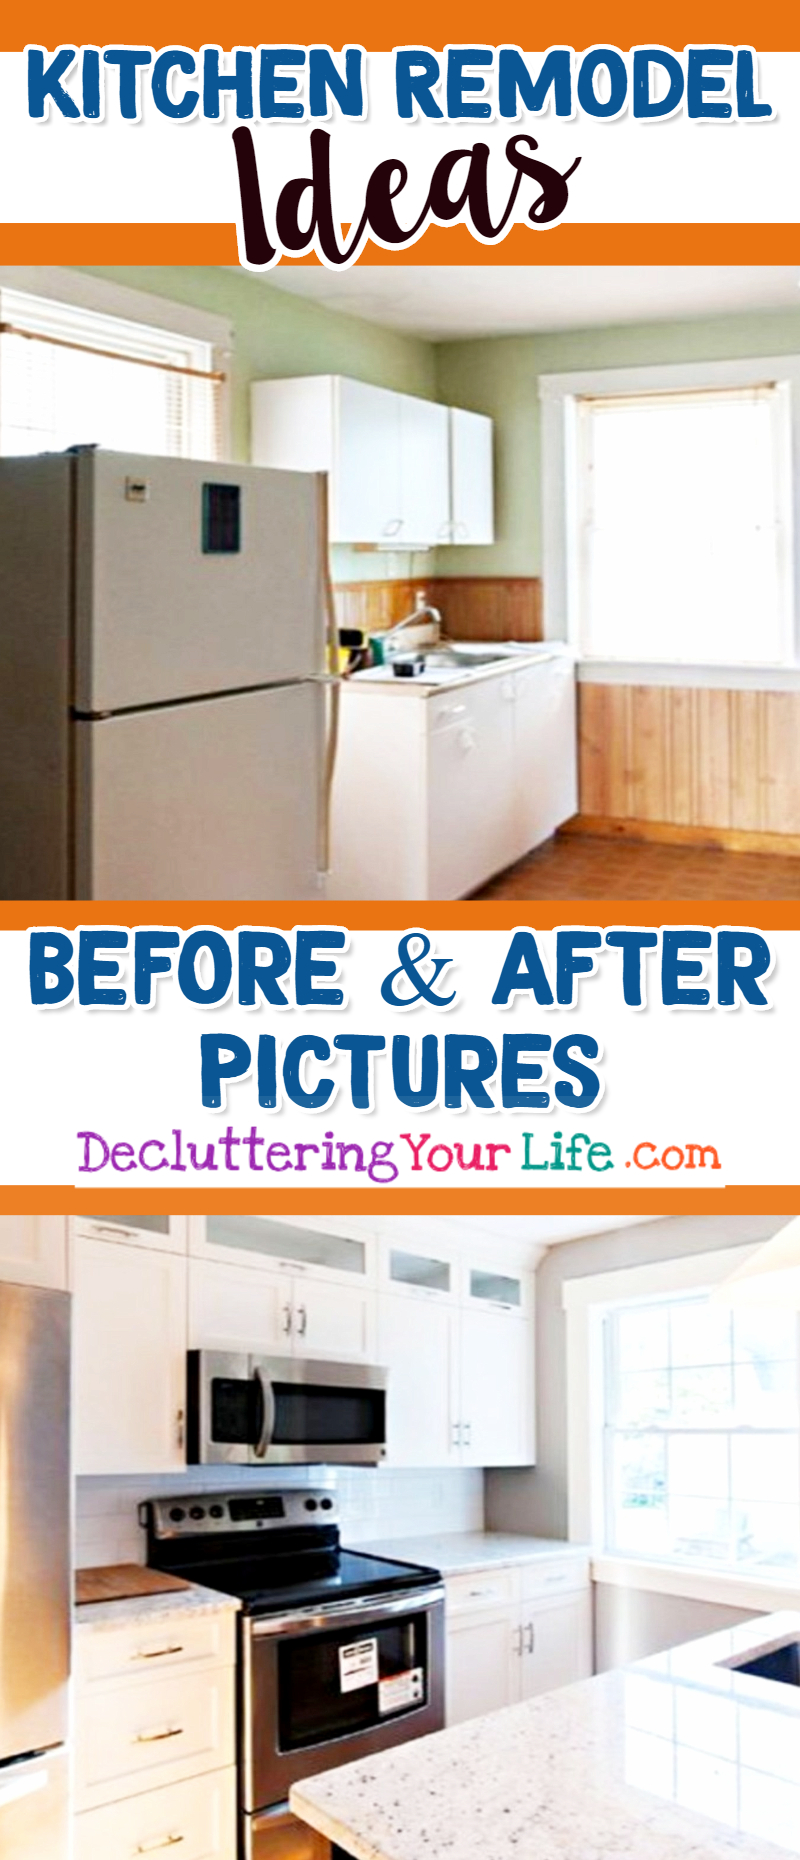 Kitchen Remodel Ideas-Before and After Pictures of Small Kitchens. LOTS of great makeover ideas for a small kitchen or apartment kitchen! #kitchenideas #beforeandafter #apartmentdecorating #diyhomedecor